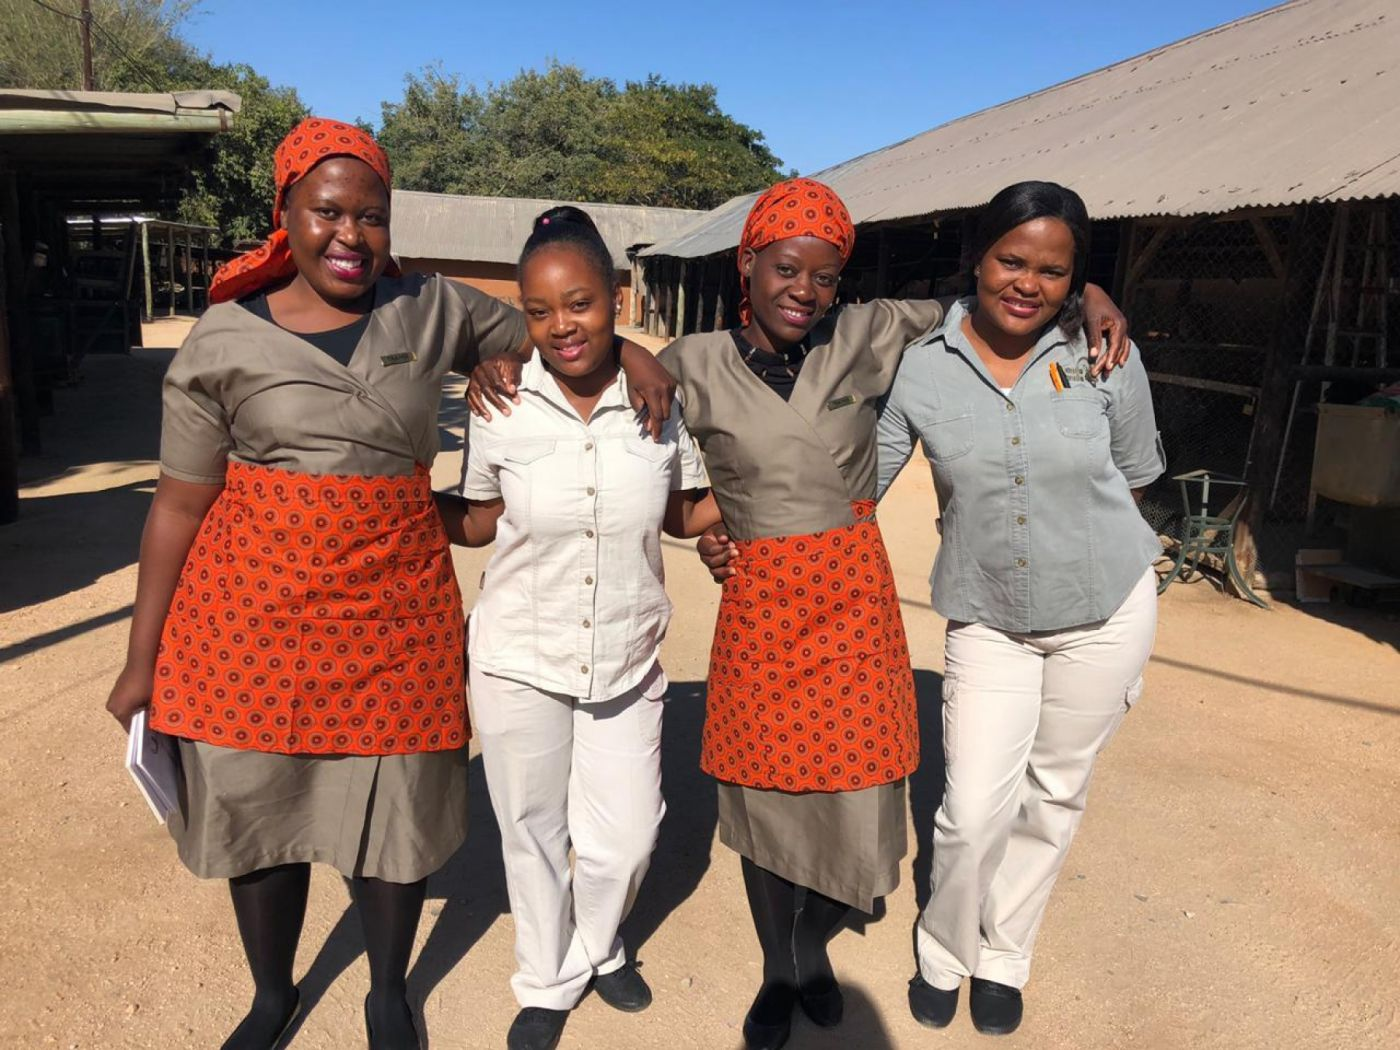 MM-Interns_Ziyandile-Nyeleti-Jenifer-Eunice_July-2019